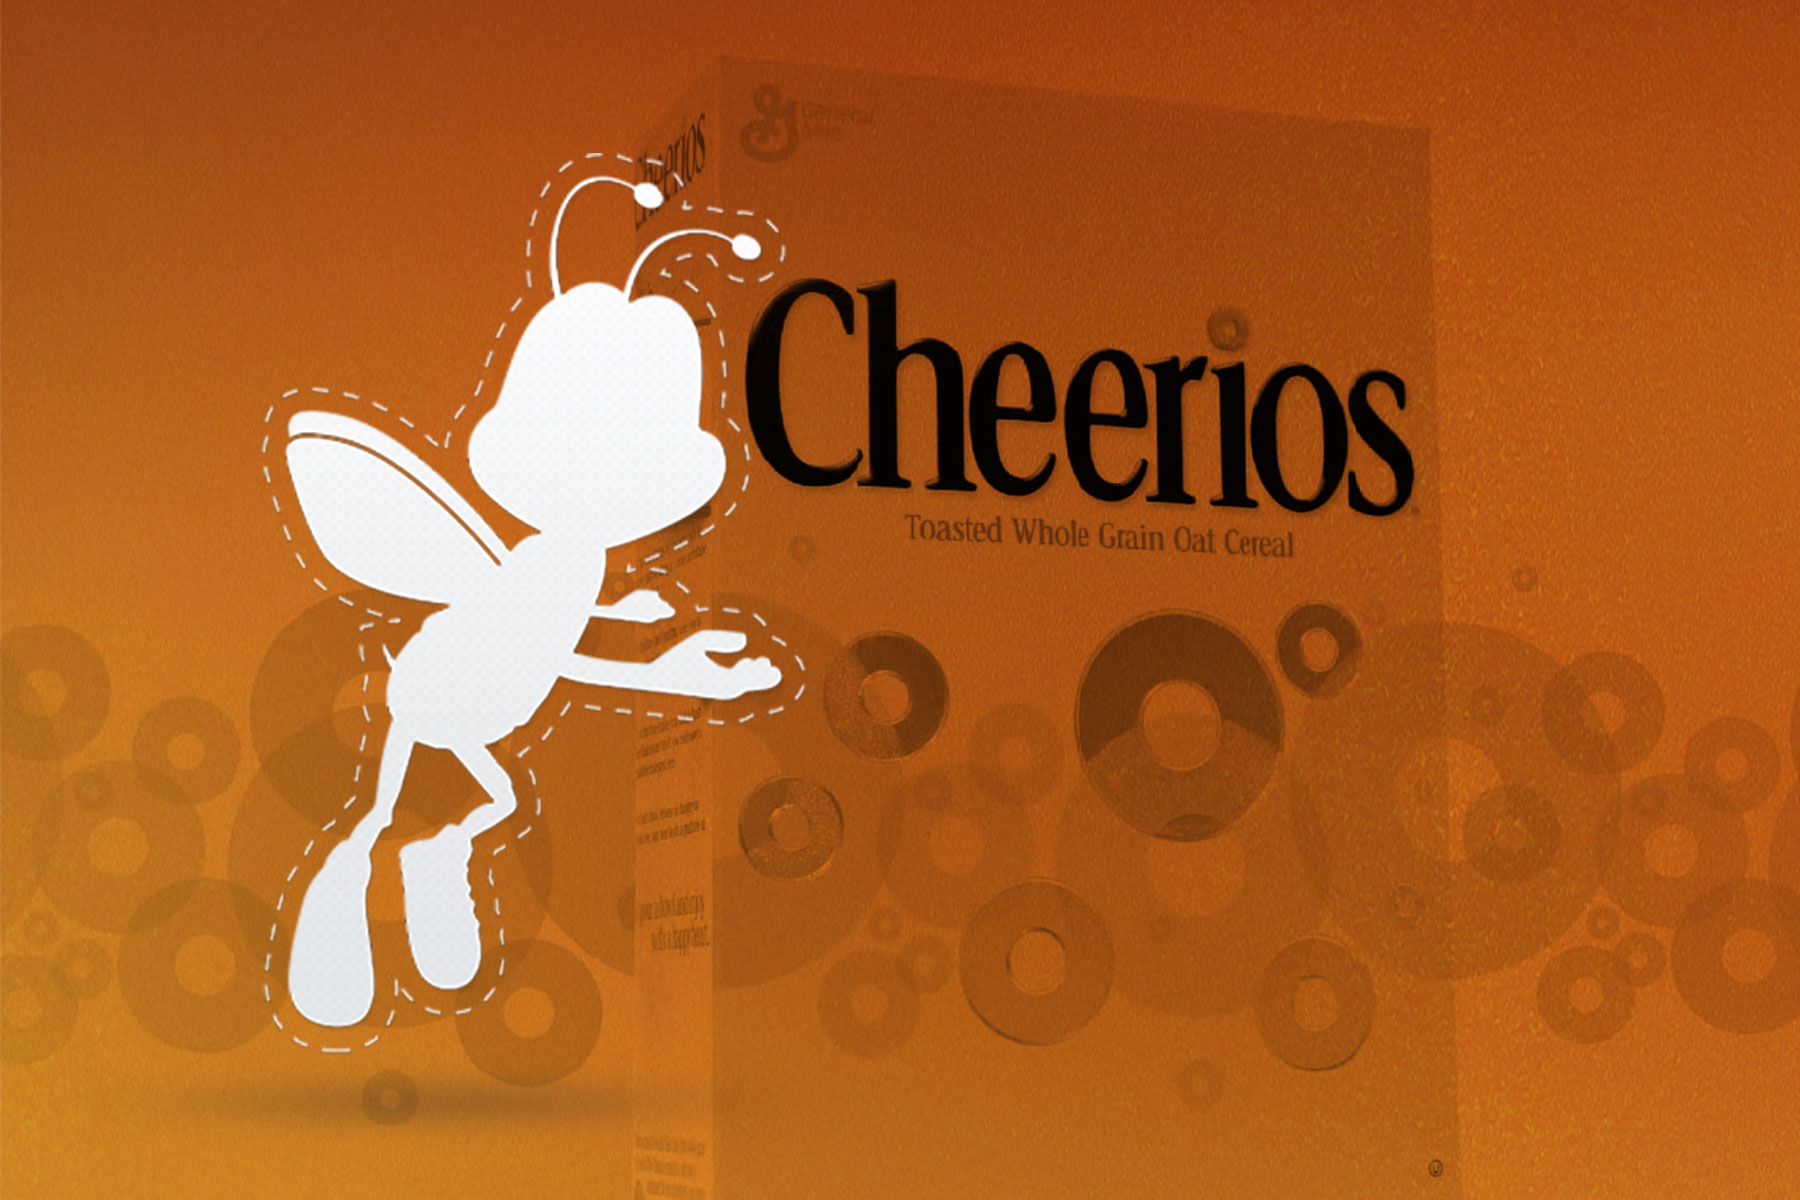 Should You Plant The Seeds General Mills And Cheerios Sent You?